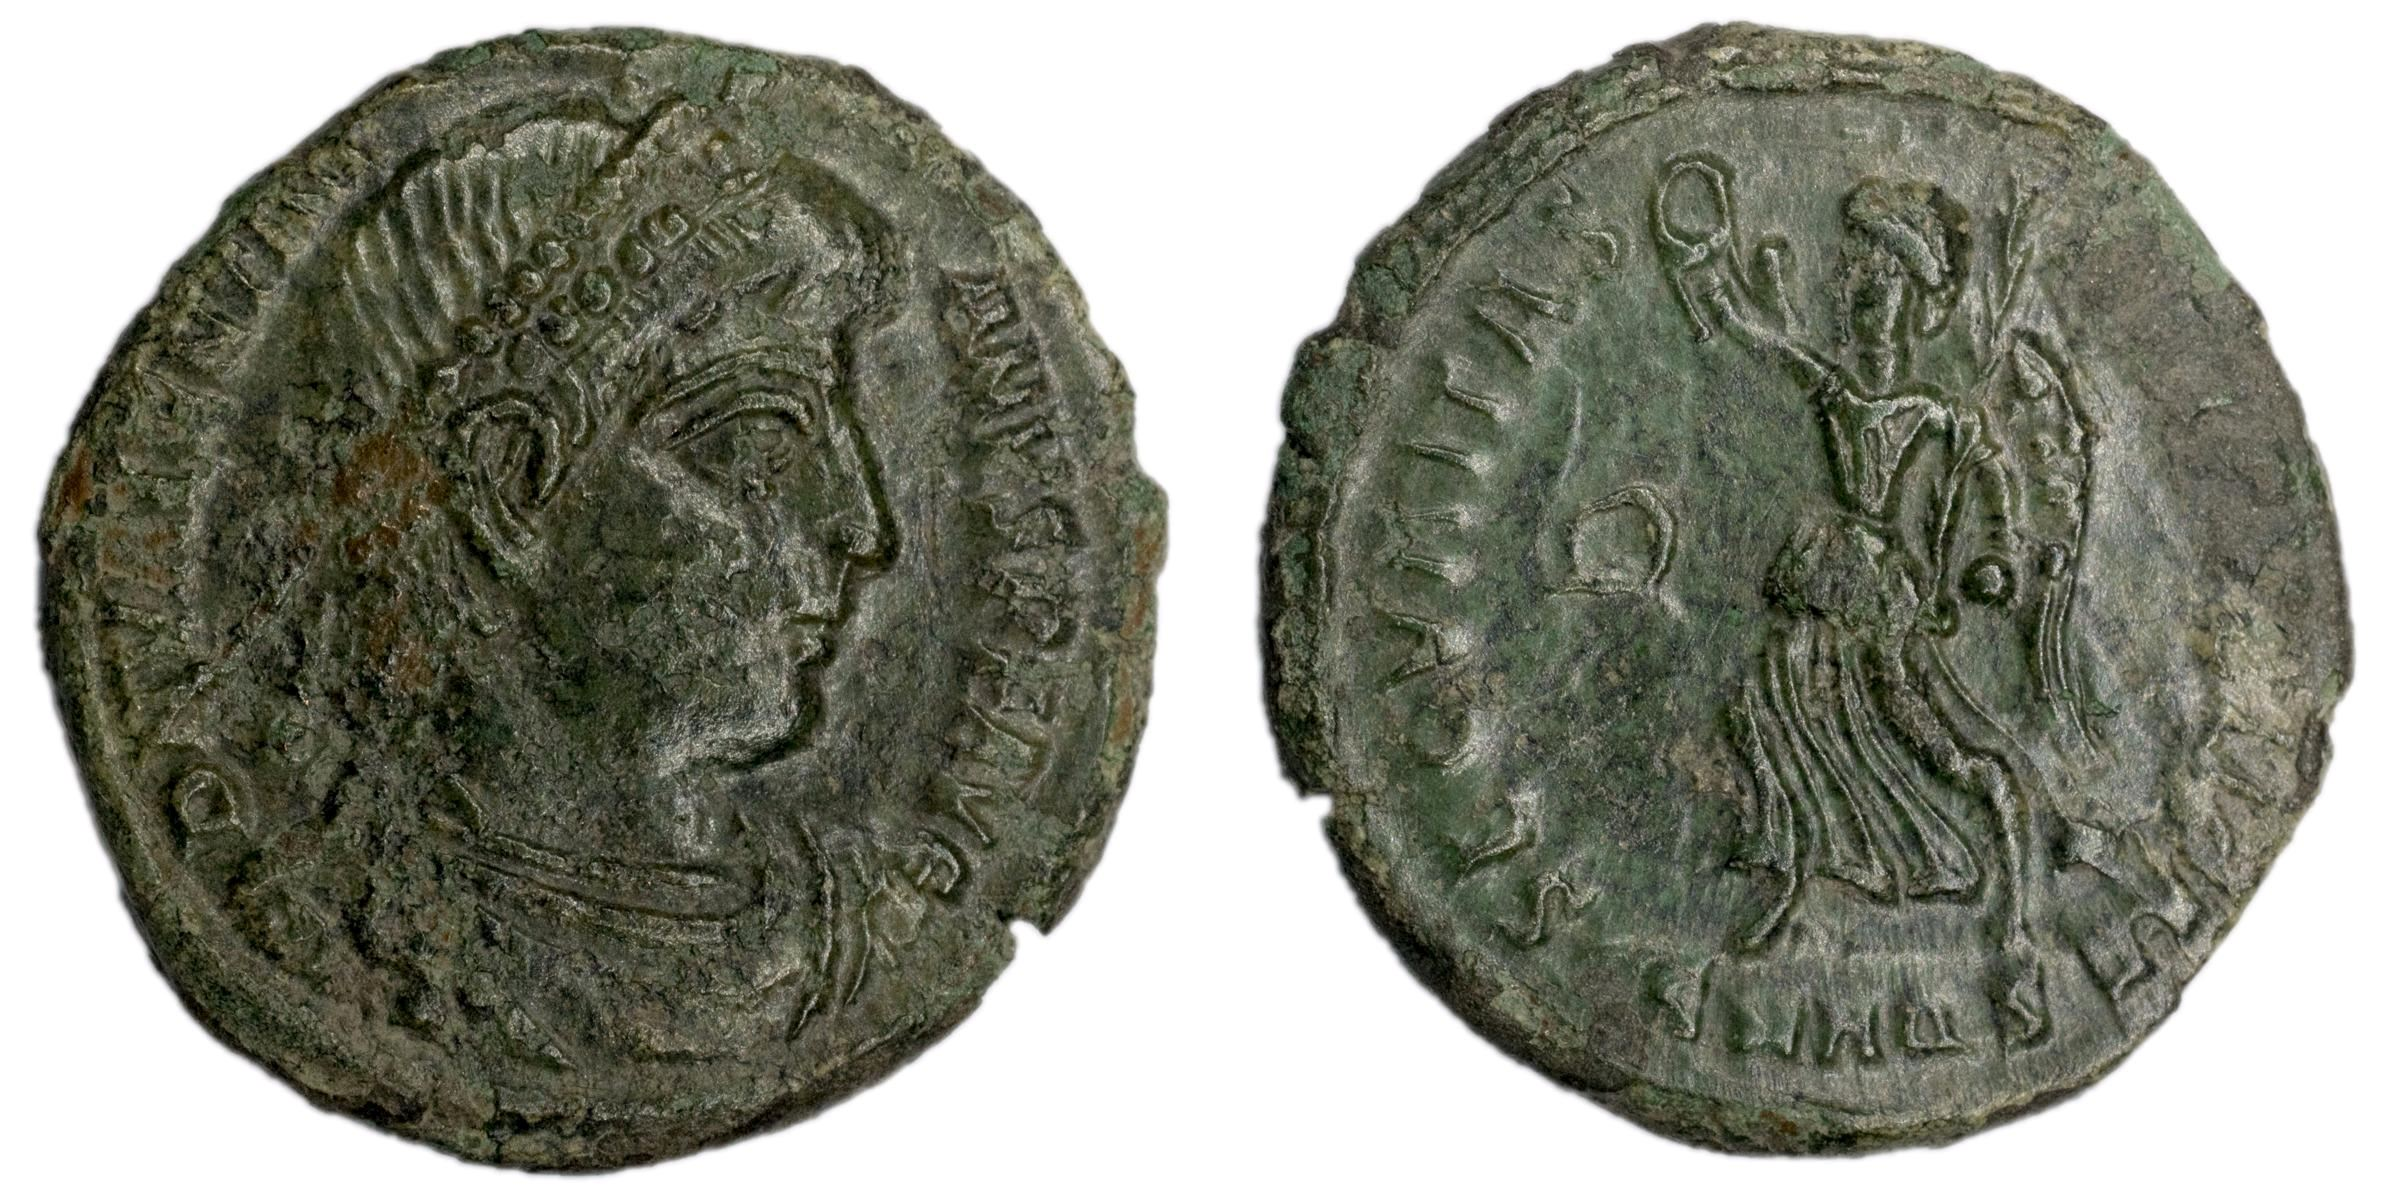 /Files/Images/Coinsite/CoinDB/Valentinianus2.jpg